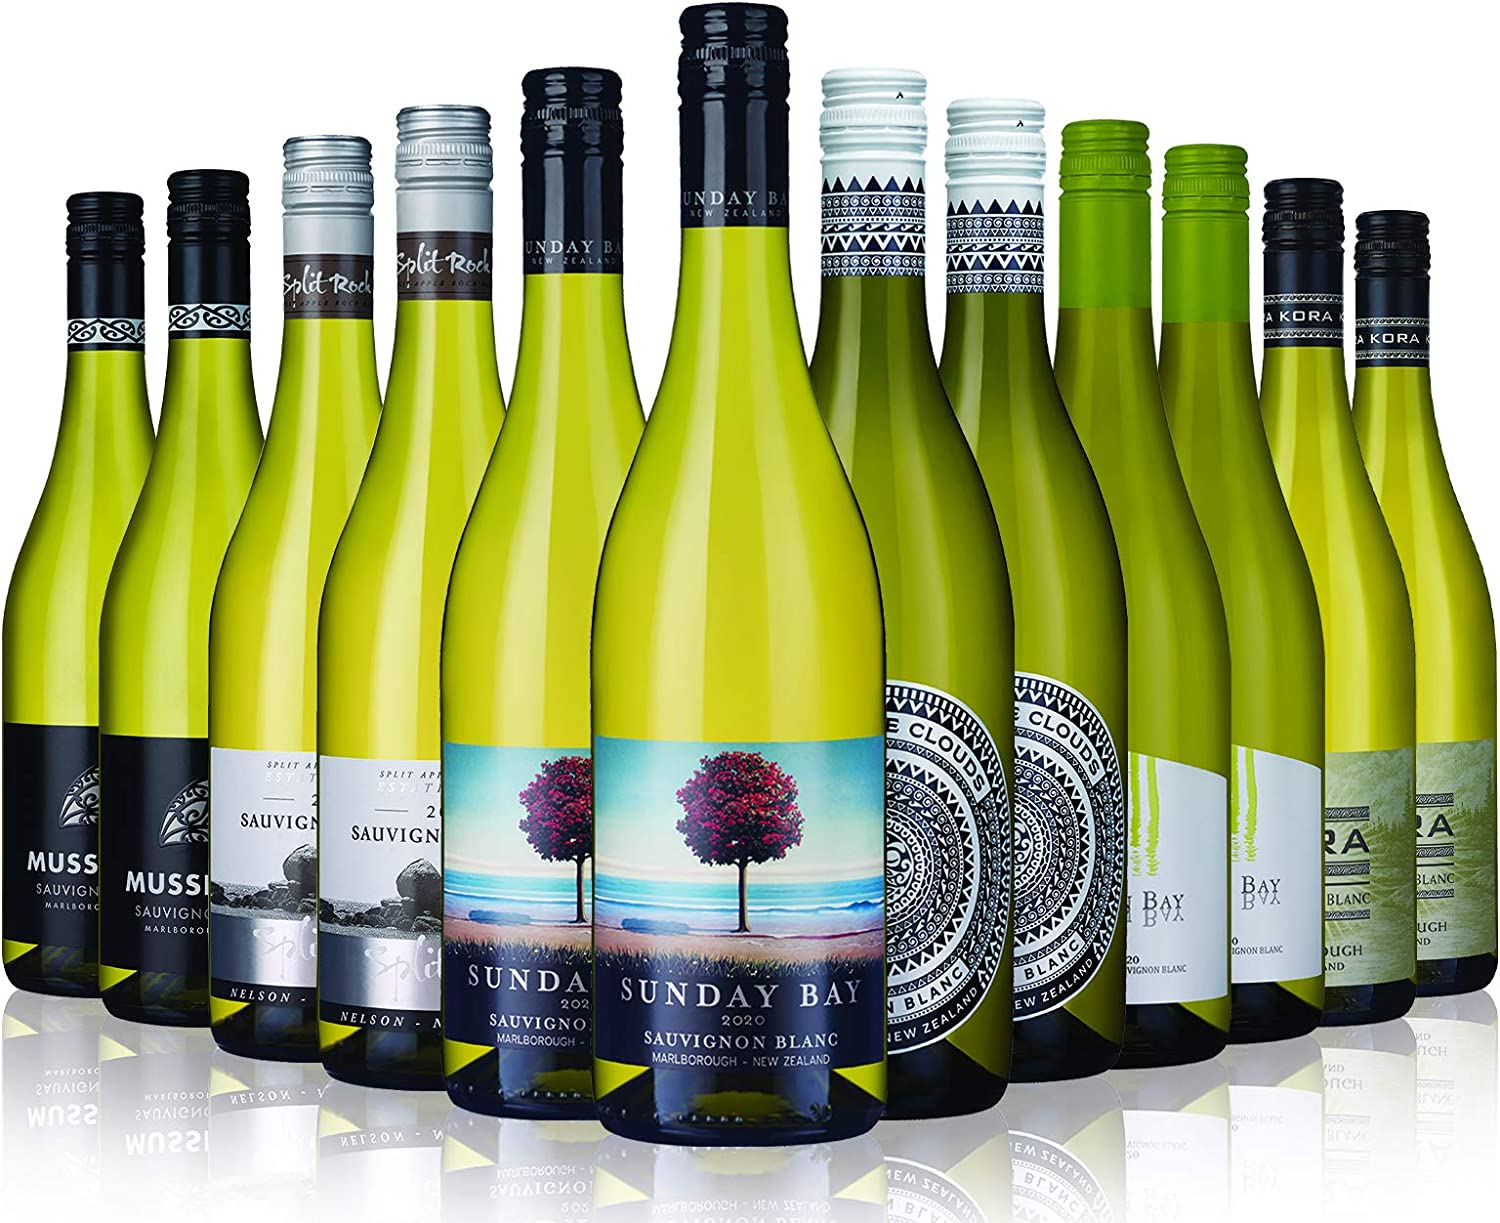 New Zealand Sauvignon Blanc Mix - 12 Bottles (75cl) - Laithwaites Wine:  Amazon.co.uk: Beer, Wine & Spirits